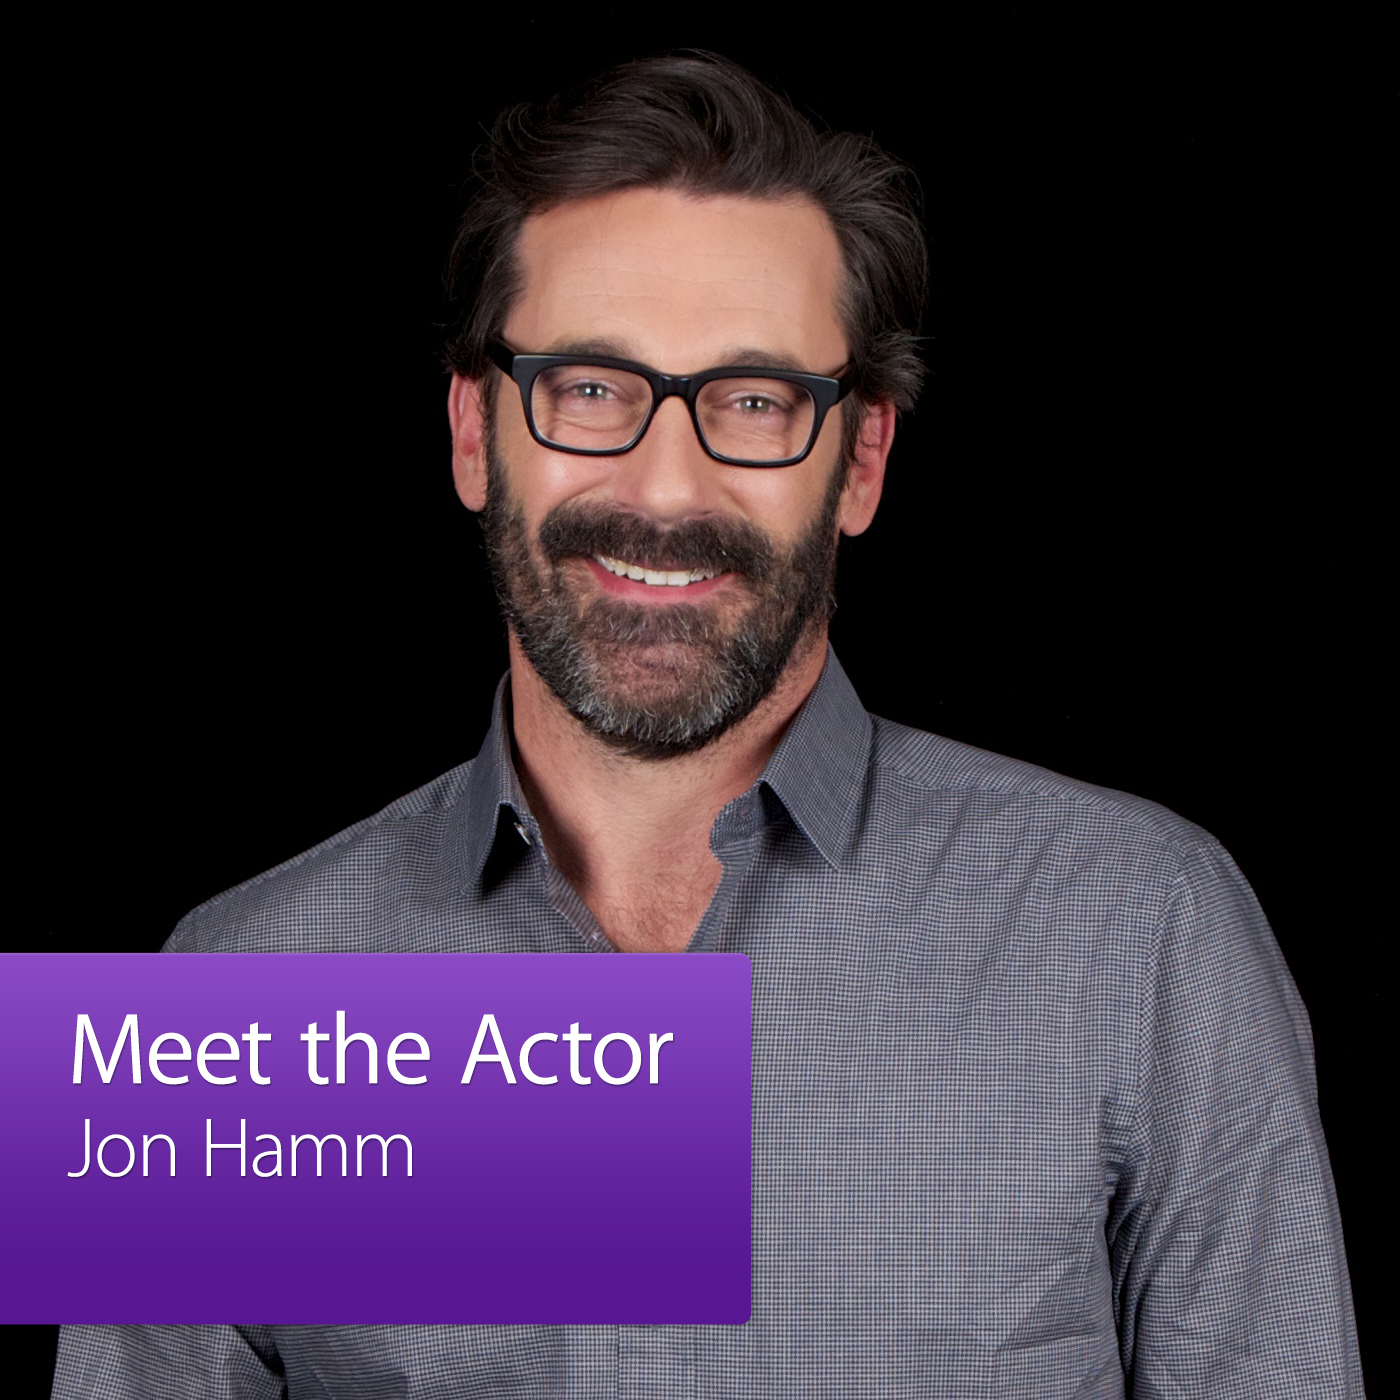 Jon Hamm: Meet the Actor